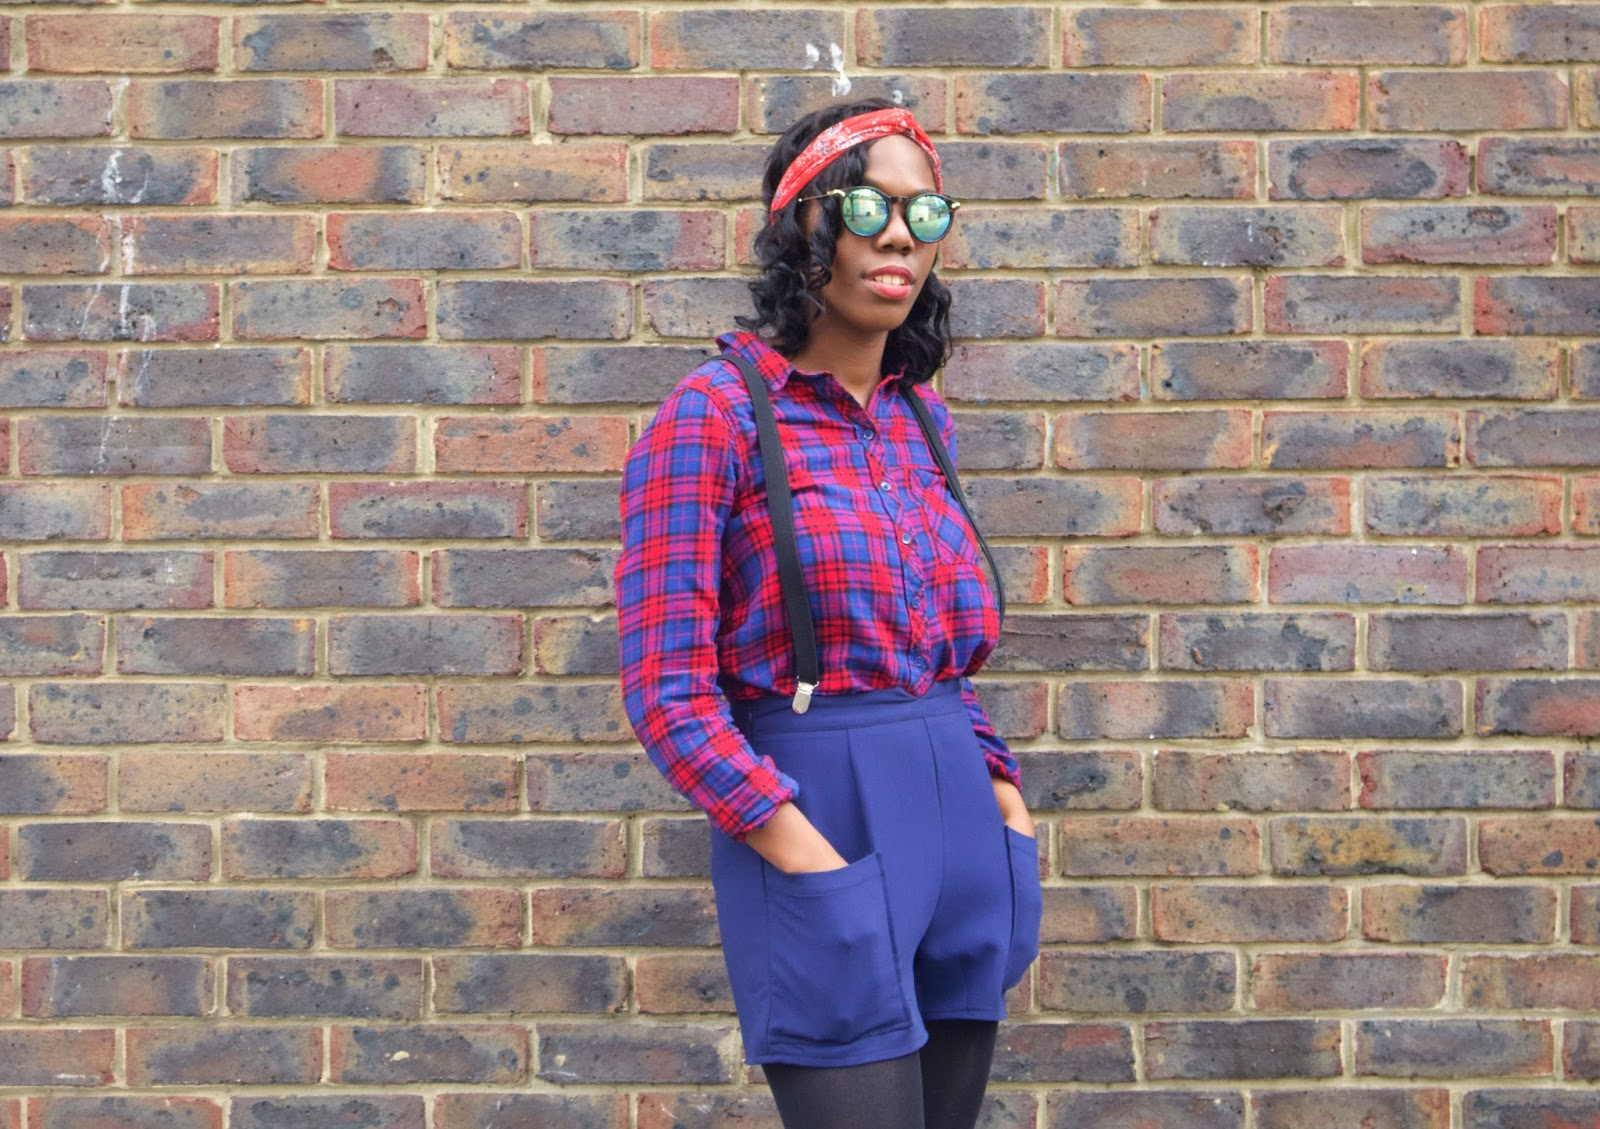 The Post Blogging Event Comedown, H&M checked shirt, H&M Red headband, ASOS green sunglasses, missguided navy high waisted shorts, black topshop braces, style blogger, fashion blogger, brick wall, uk blogger, black girls who blog, black girl magic